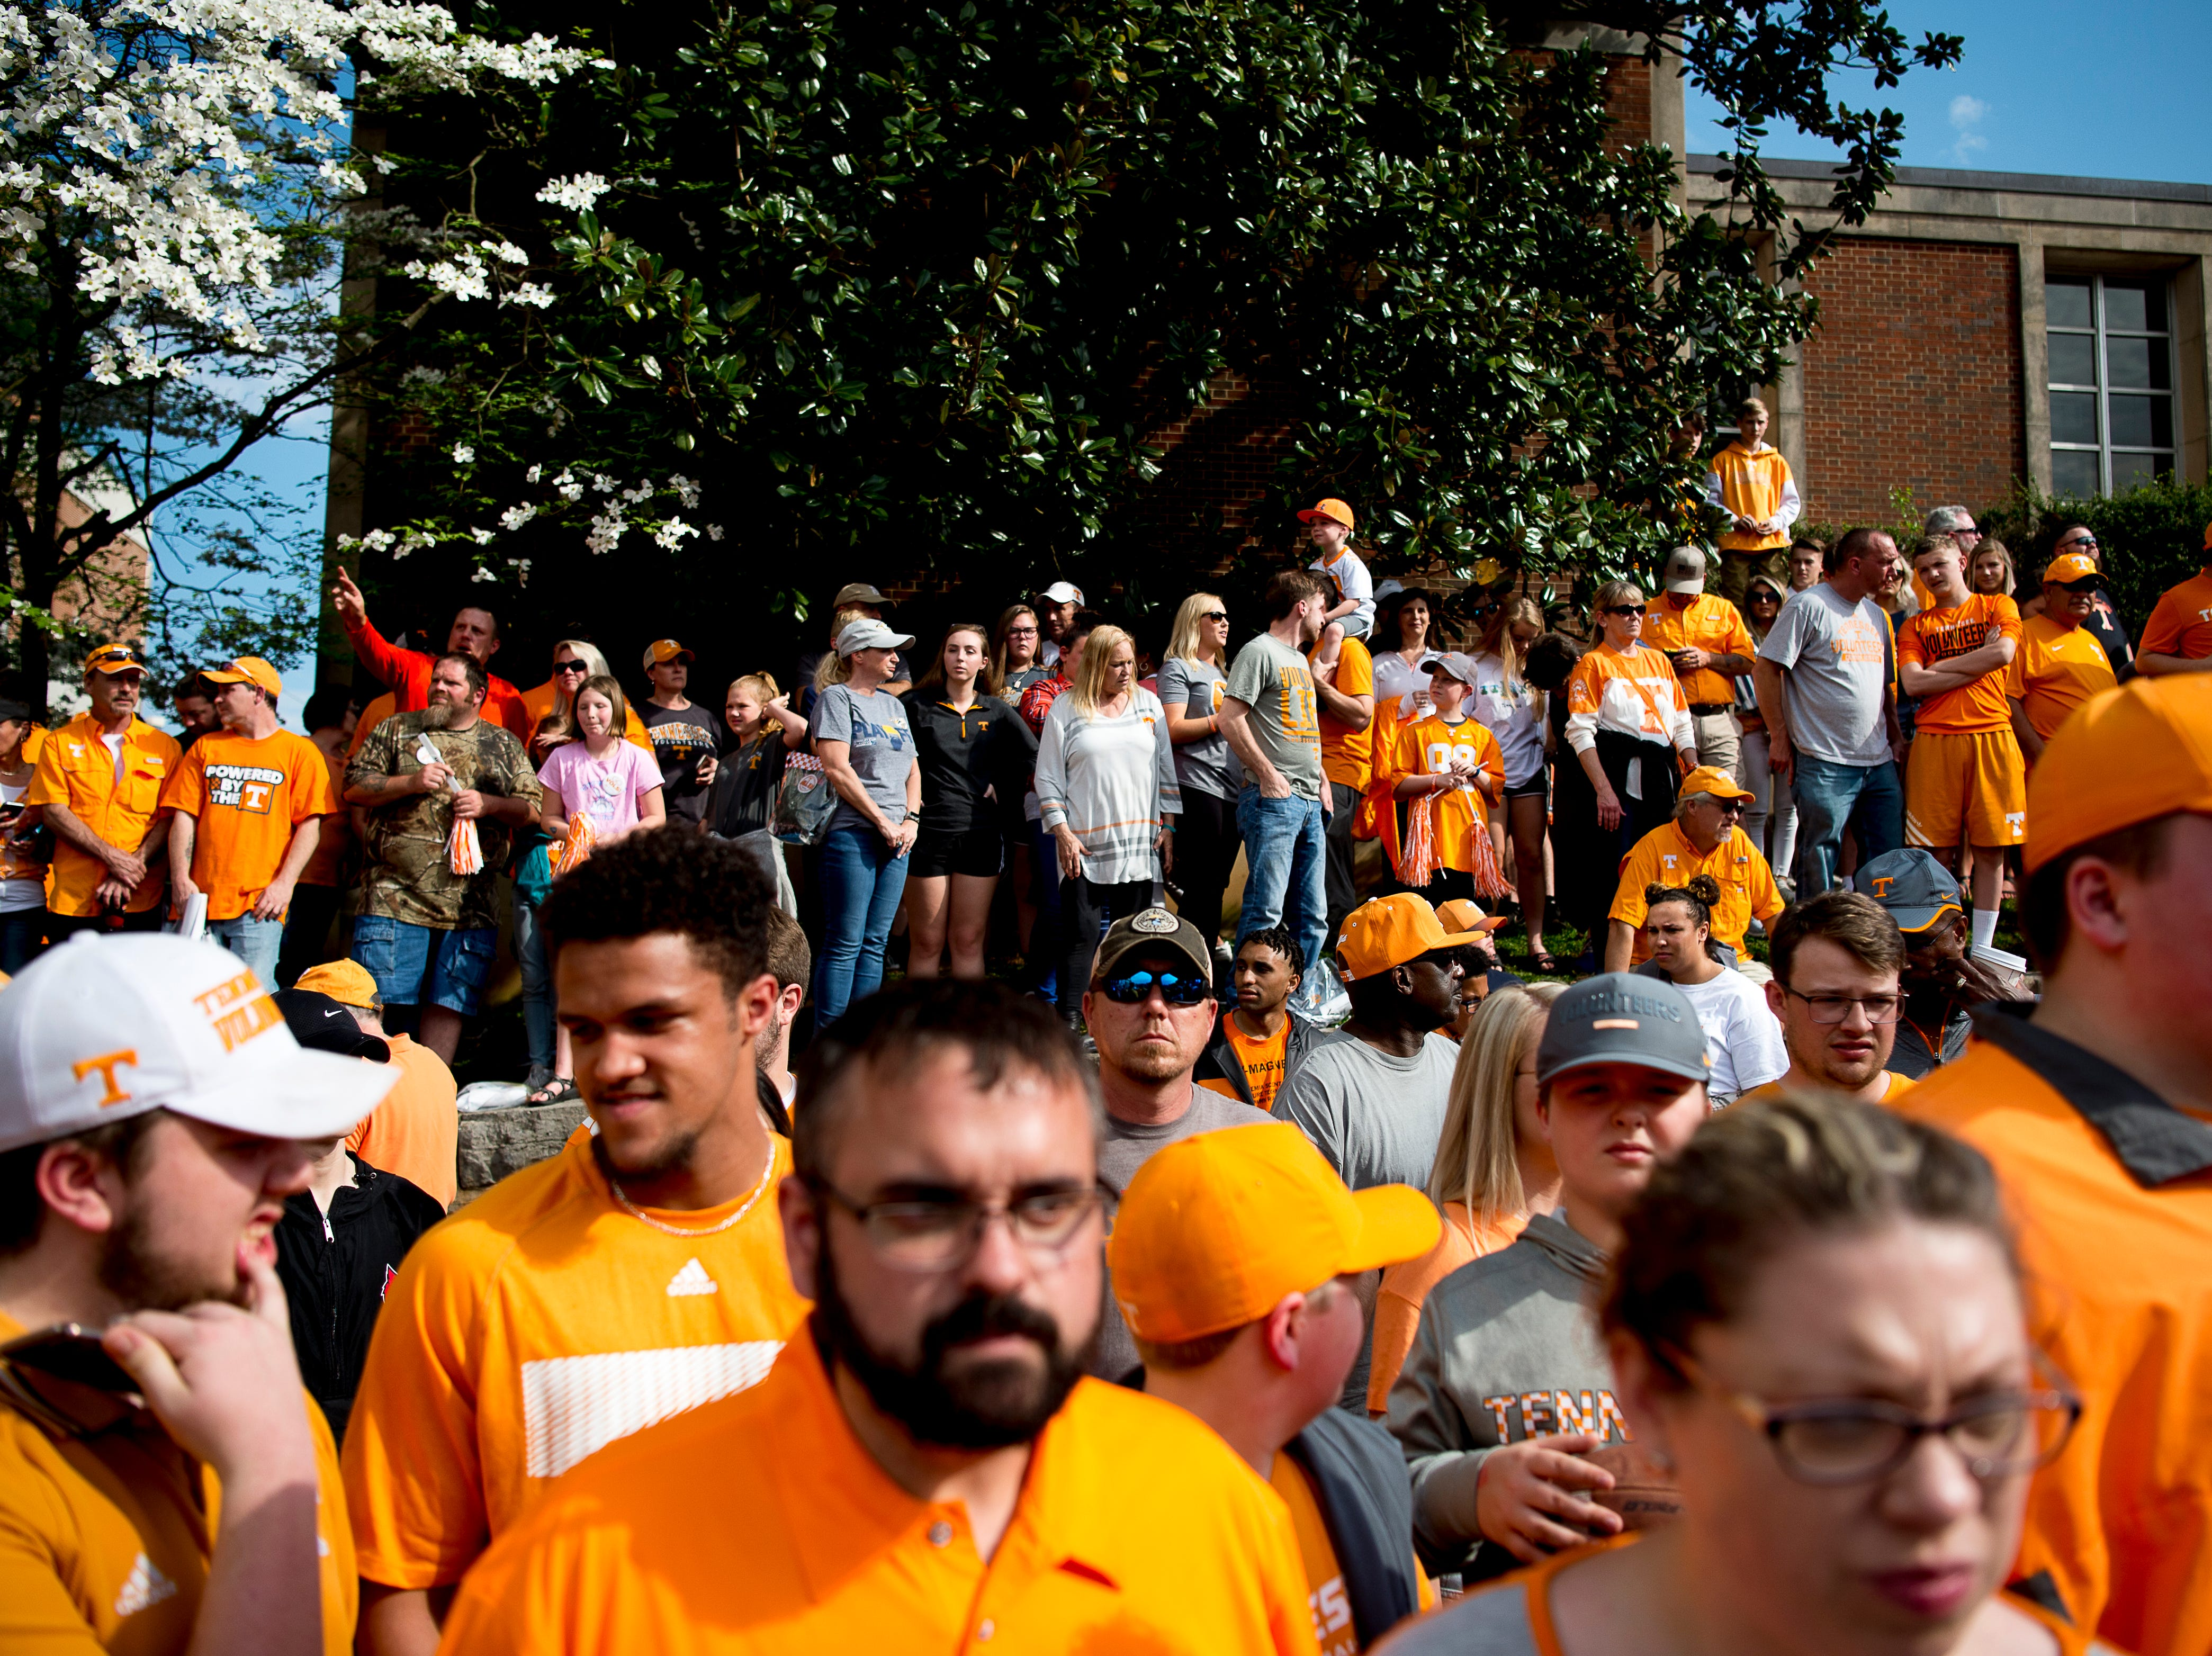 Fans gather for the Vol Walk at the Tennessee Spring Game at Neyland Stadium in Knoxville, Tennessee on Saturday, April 13, 2019.